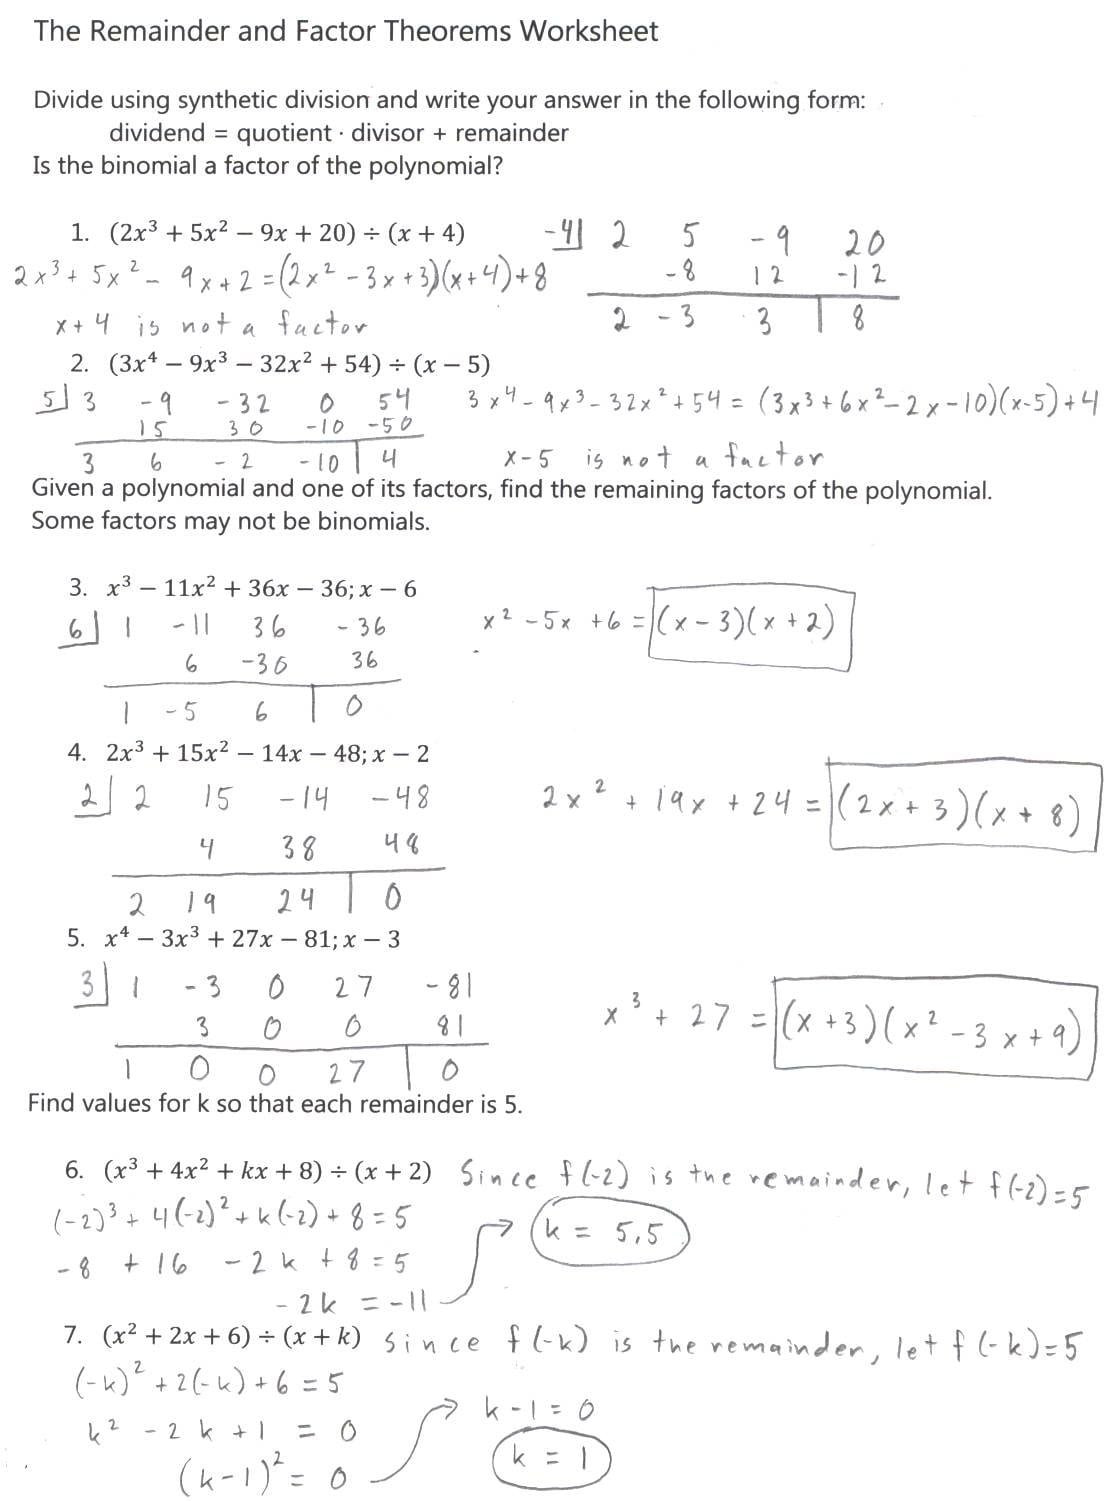 30 Factoring Polynomials Worksheet Answers